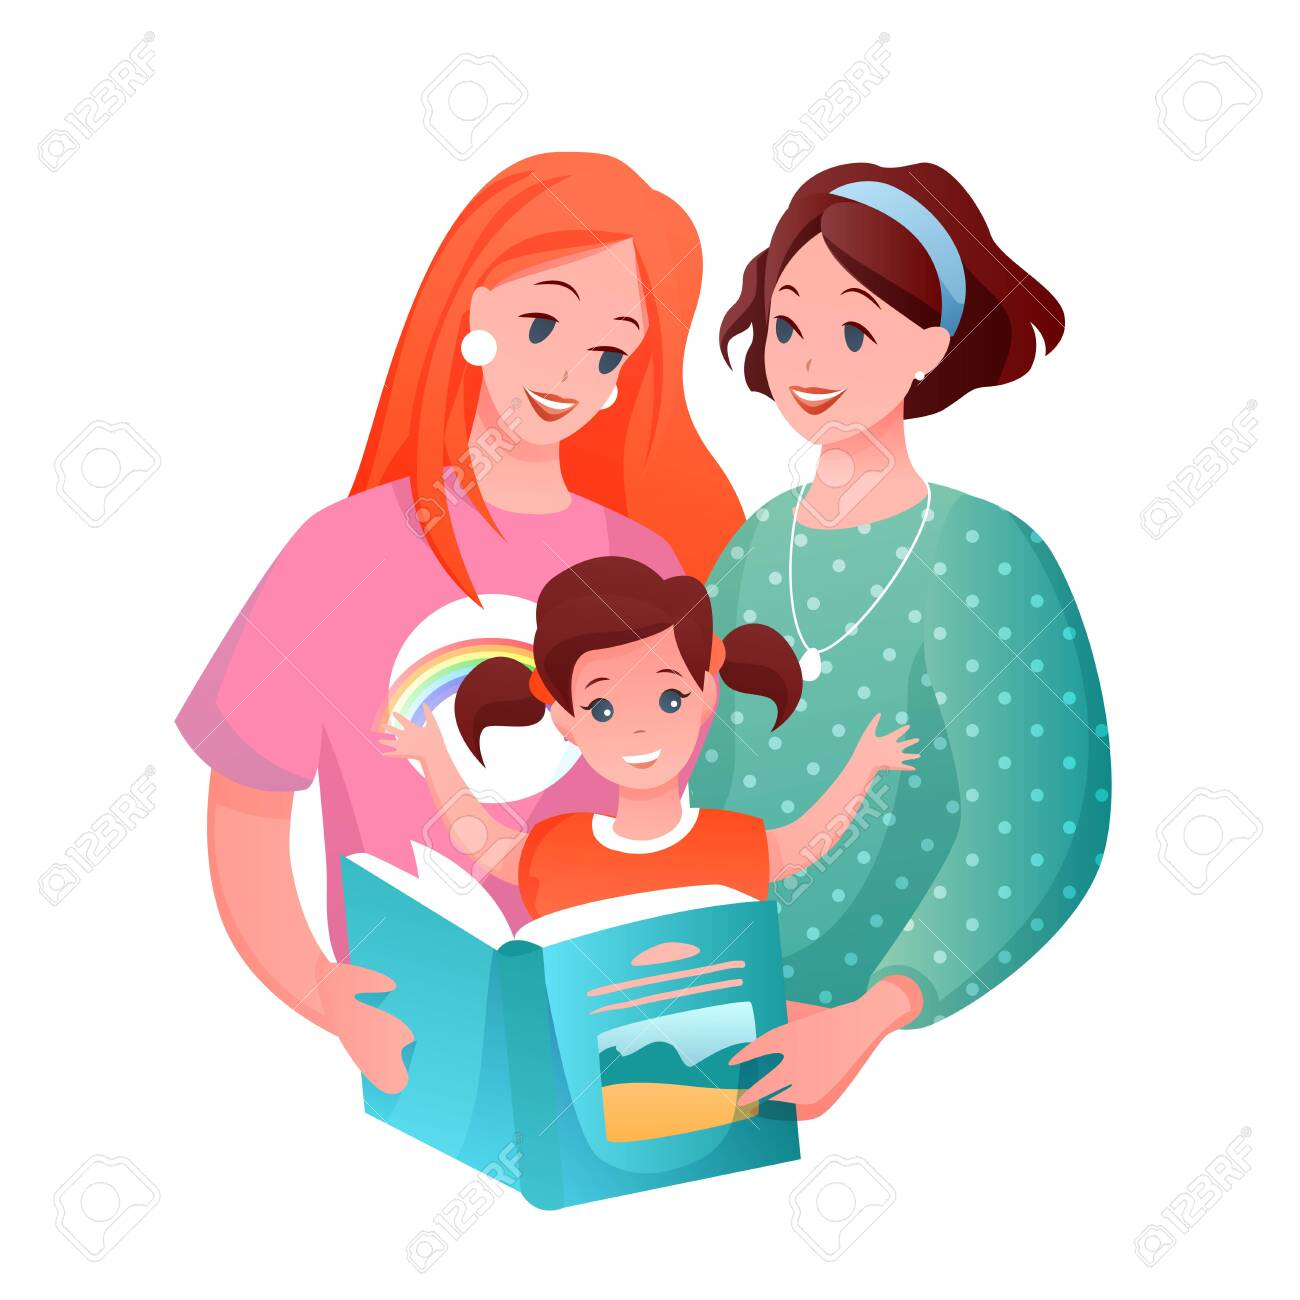 Lesbian family with kid vector illustration. Cartoon flat happy loving woman parent characters and girl child reading book together, LGBT family concept isolated on white - 151954104